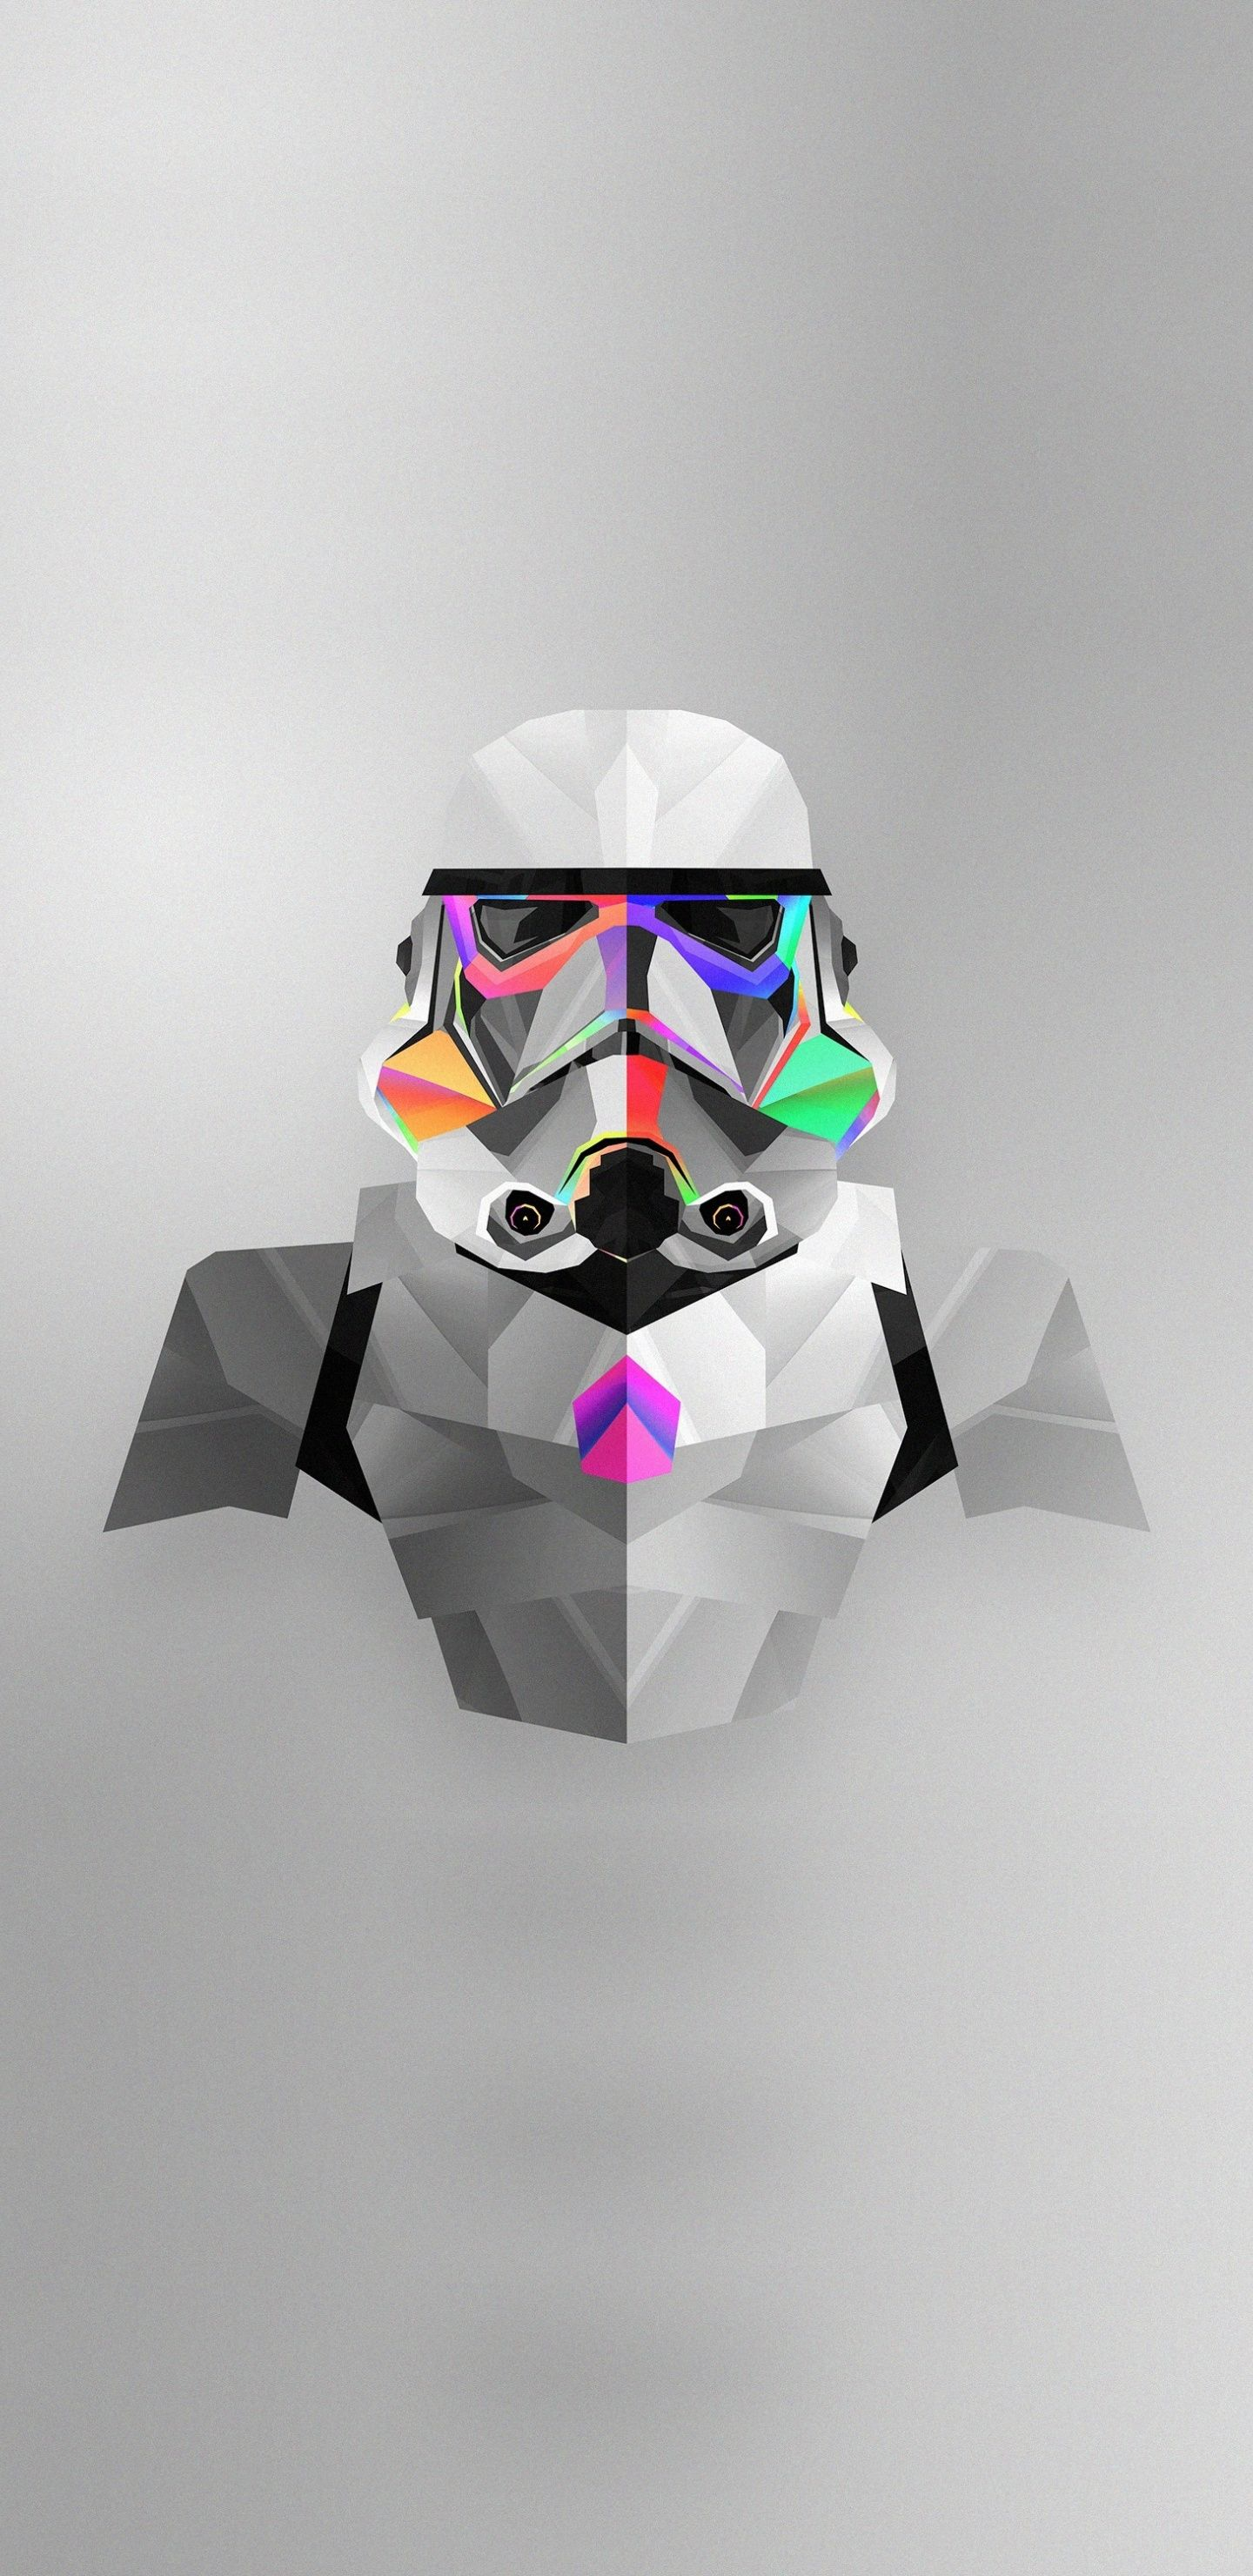 Download 1440x2960 Wallpaper Stormtrooper Abstract Star Wars Colorful Minimal Art Samsung Galaxy S8 In 2020 Star Wars Wallpaper Star Wars Art Star Wars Trooper